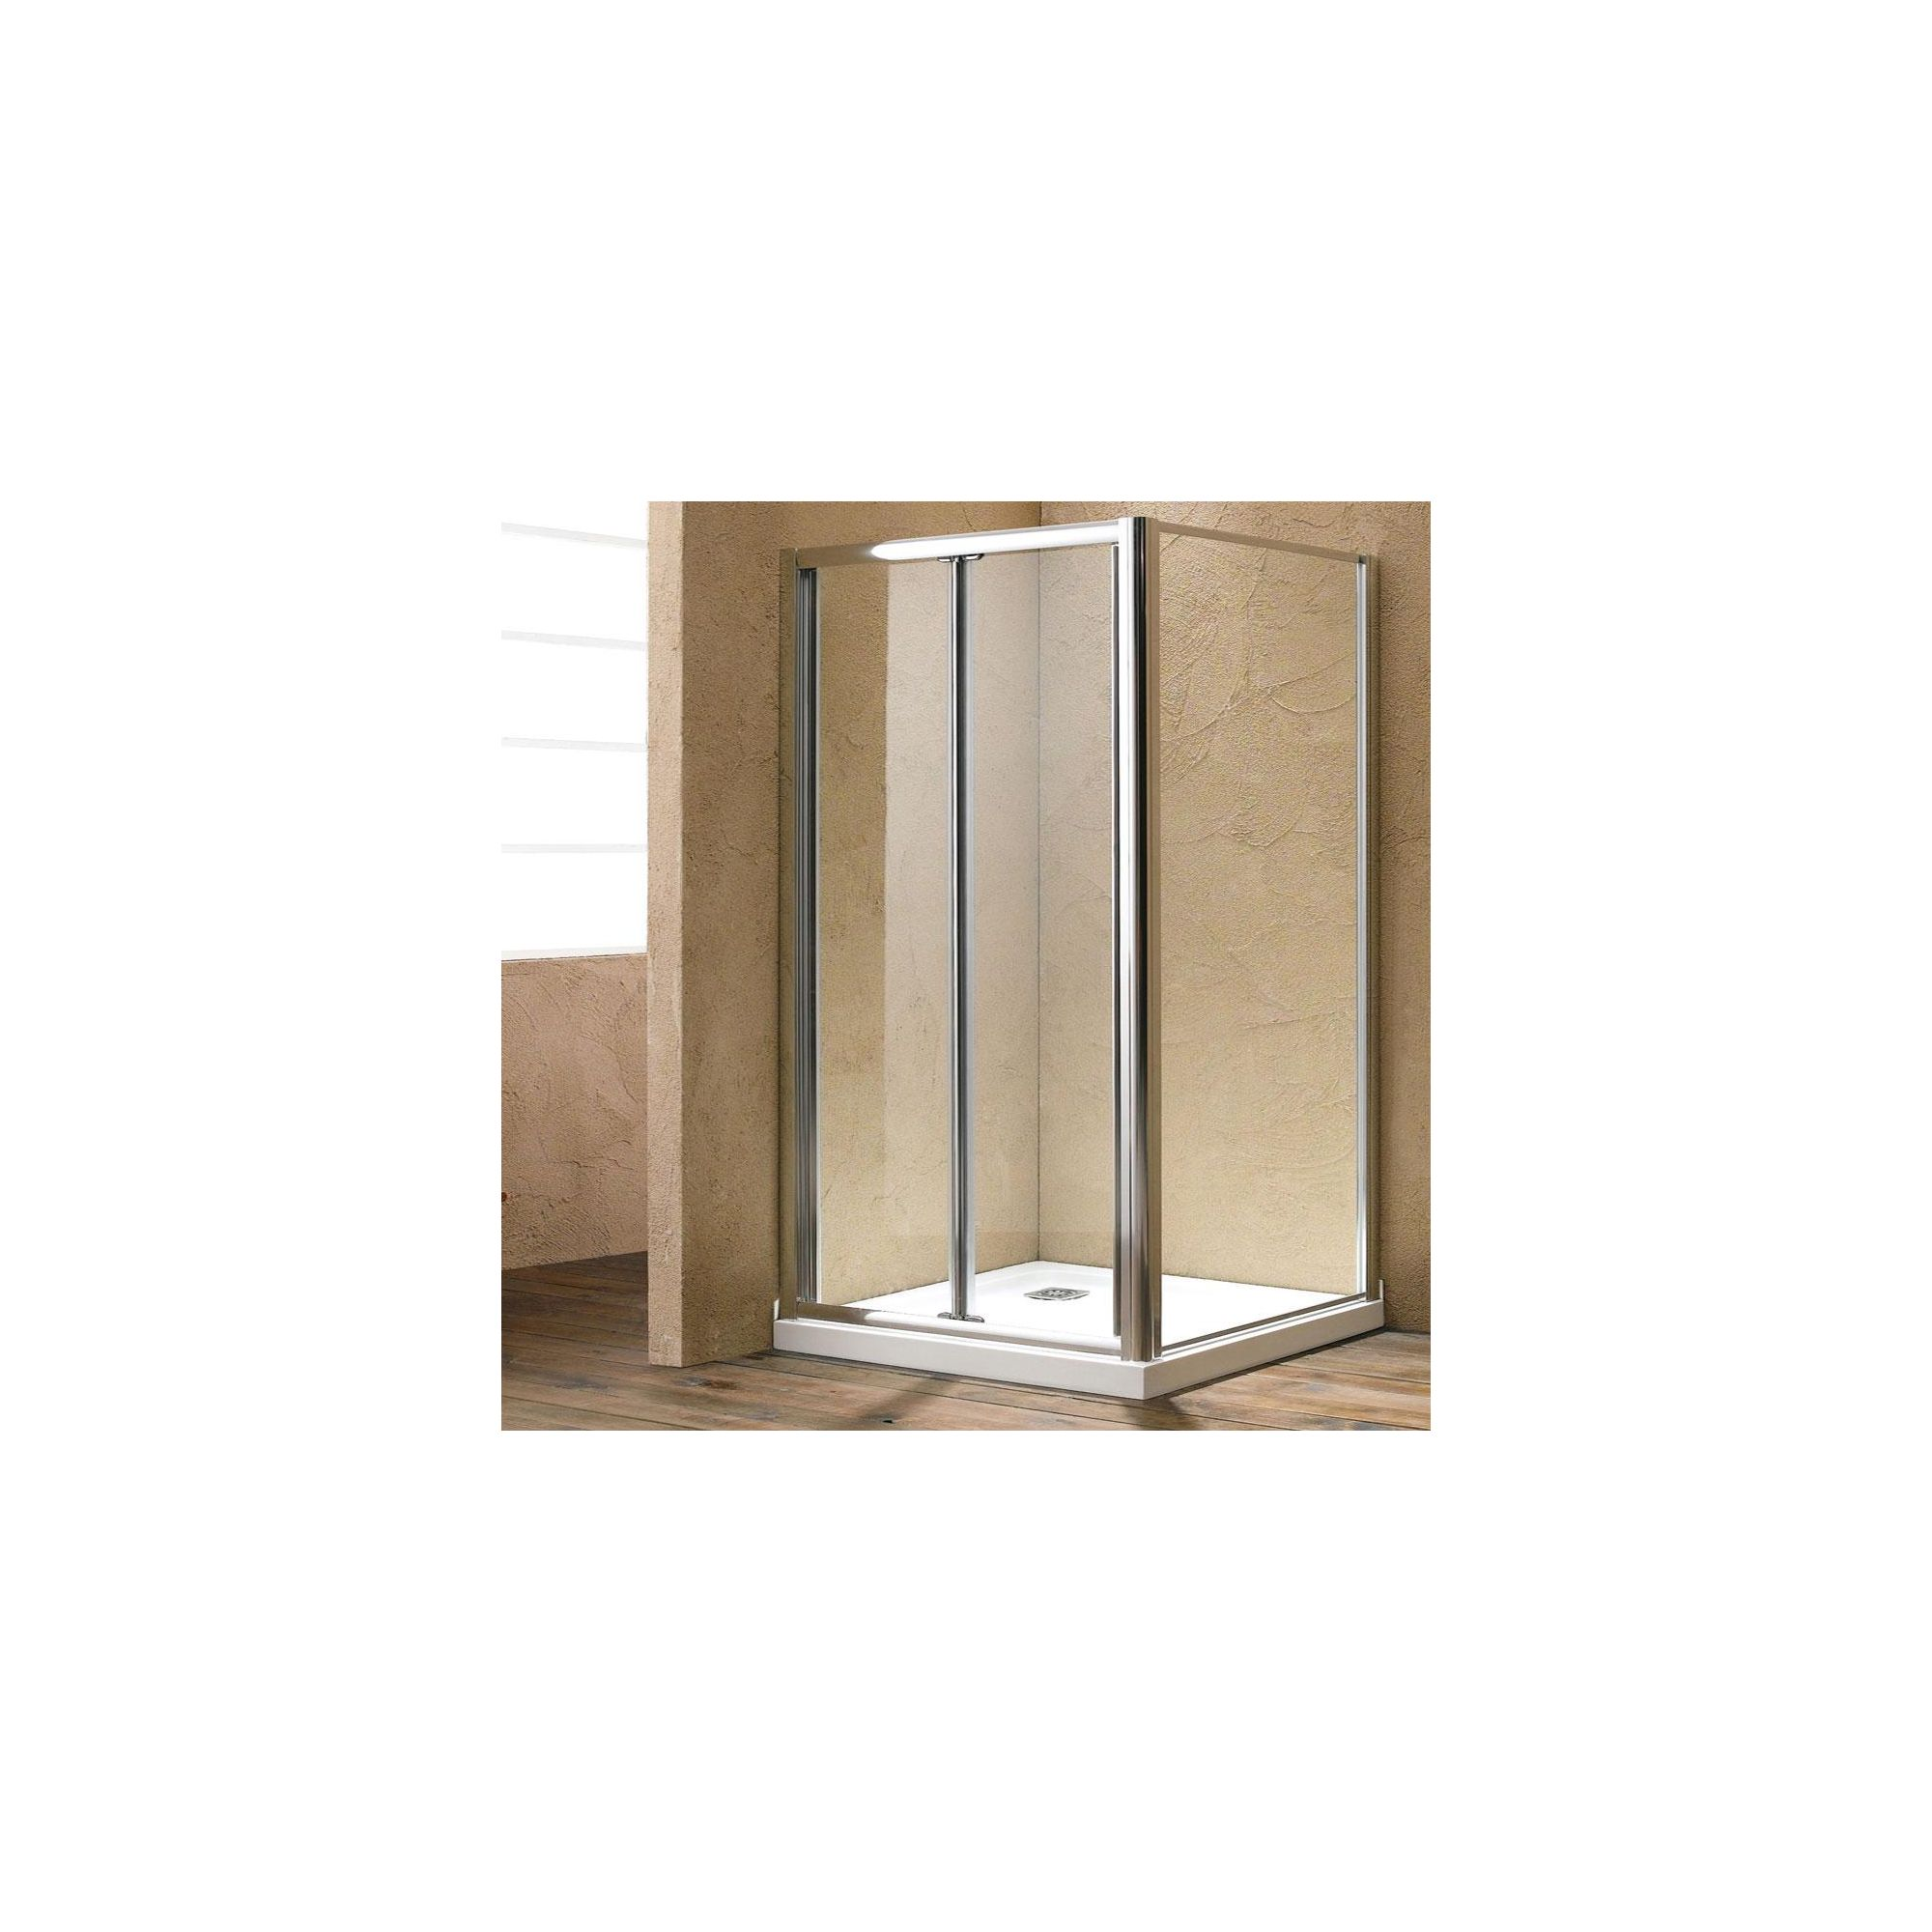 Duchy Style Single Bi-Fold Door Shower Enclosure, 900mm x 700mm, 6mm Glass, Low Profile Tray at Tesco Direct